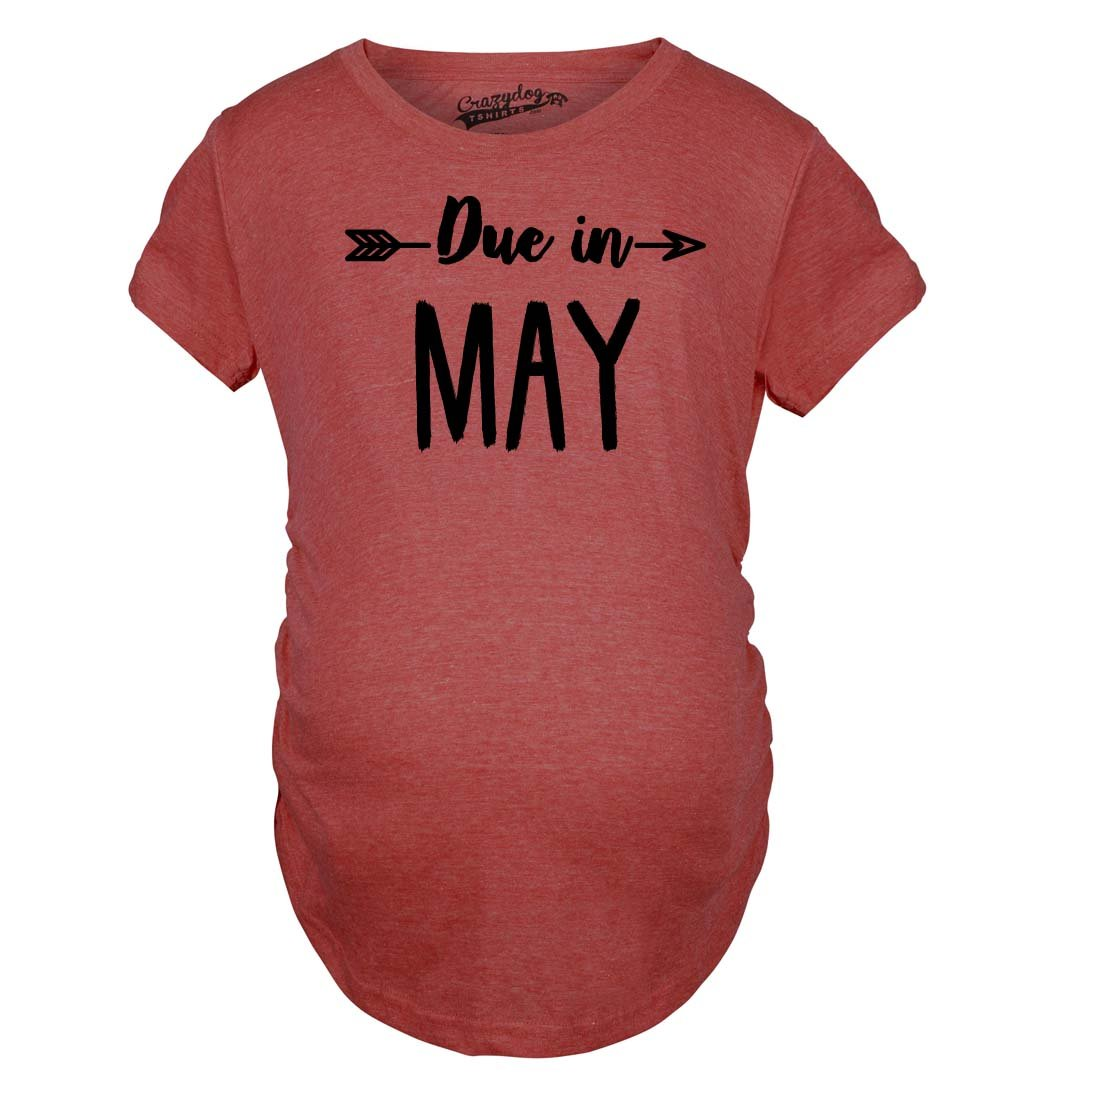 Maternity Due In May Funny T shirts Pregnant Shirts Announce Pregnancy Month Shi Crazy Dog Tshirts 016DueMAY-GRY-MAT